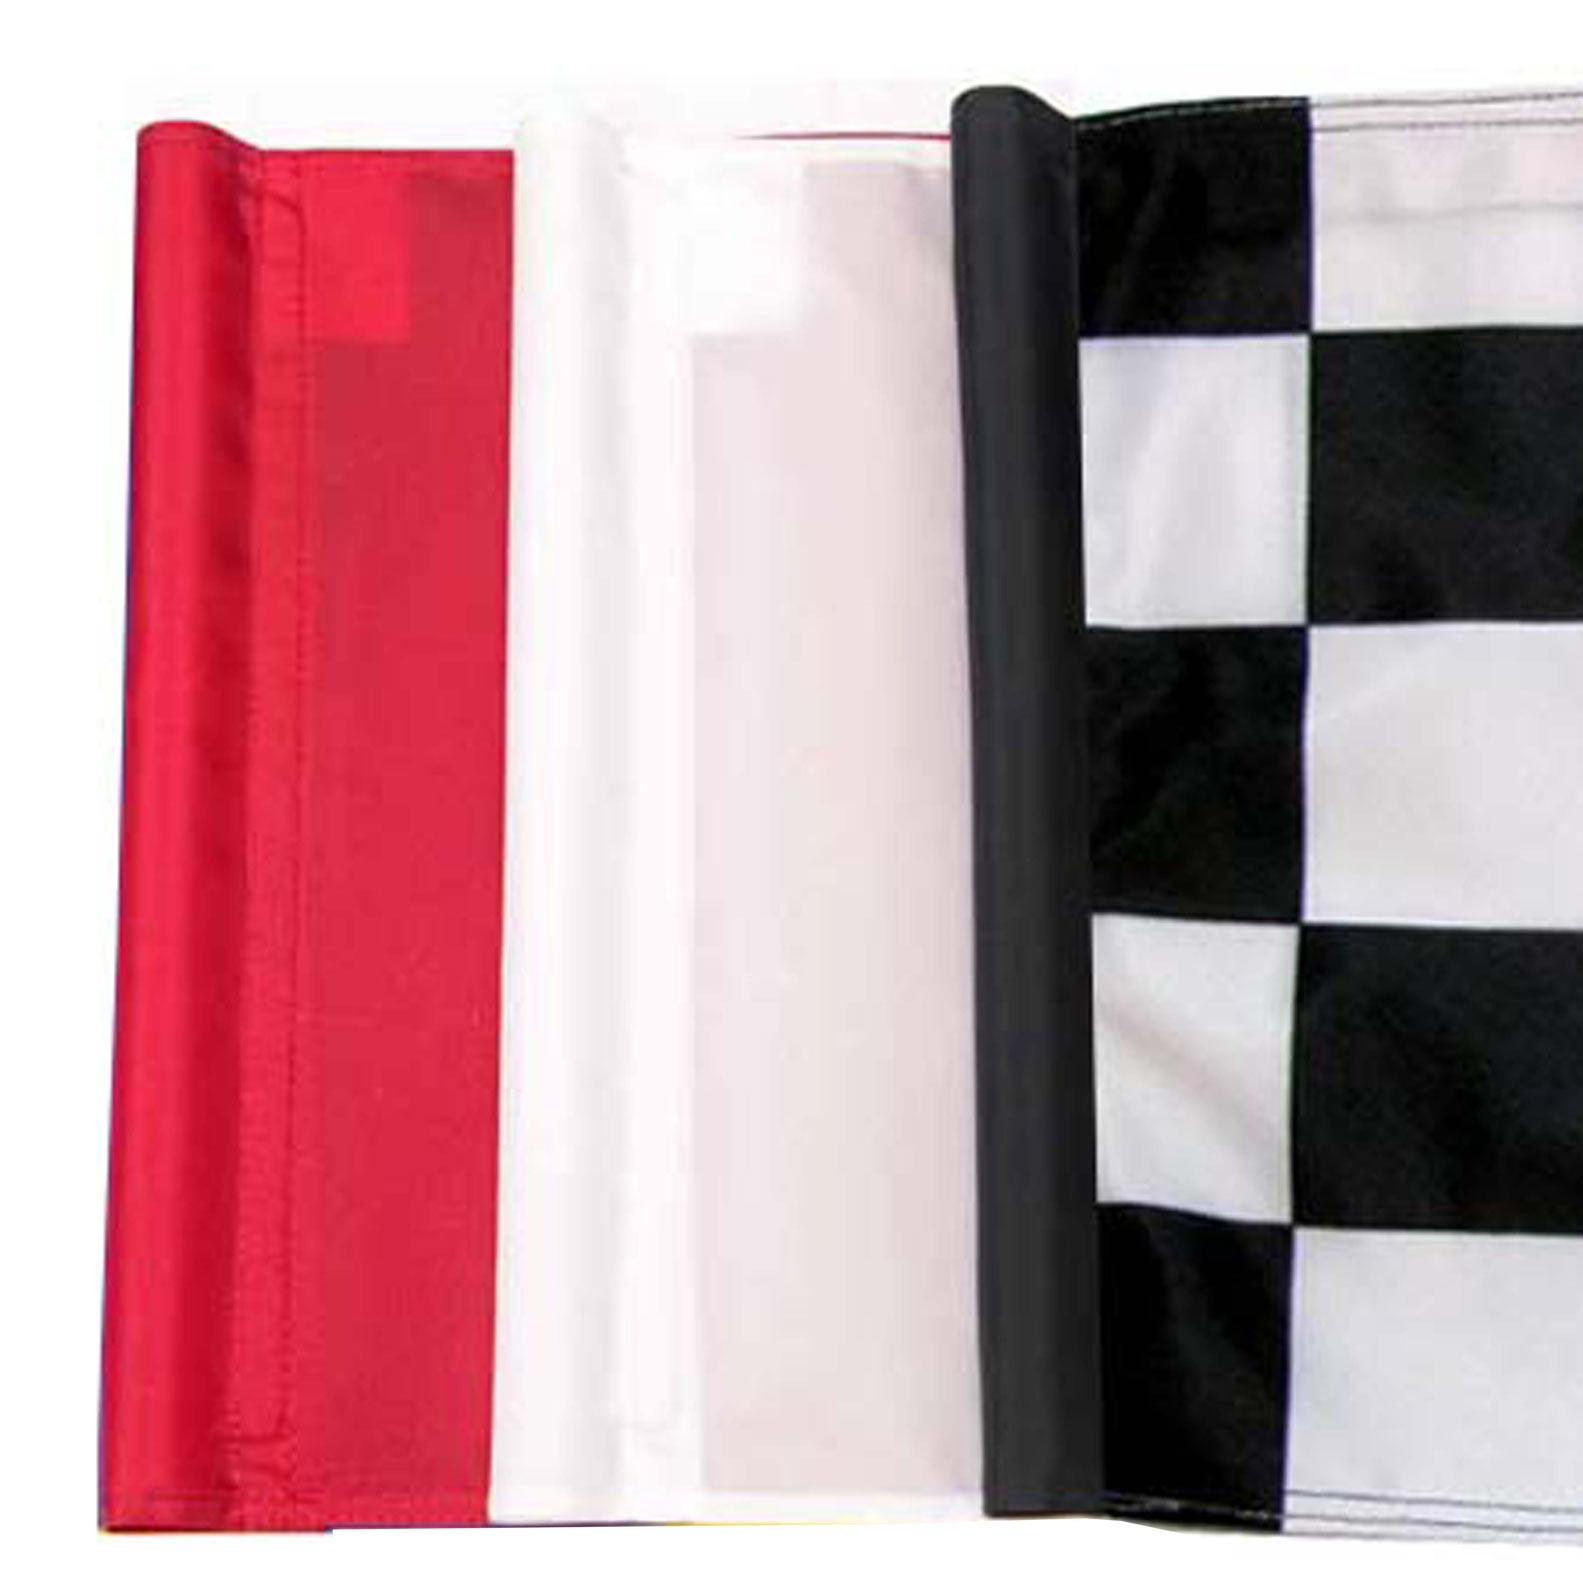 Golf Putting Greens Flags 3 Colors: red, white, checkered. Synthetic turf installation